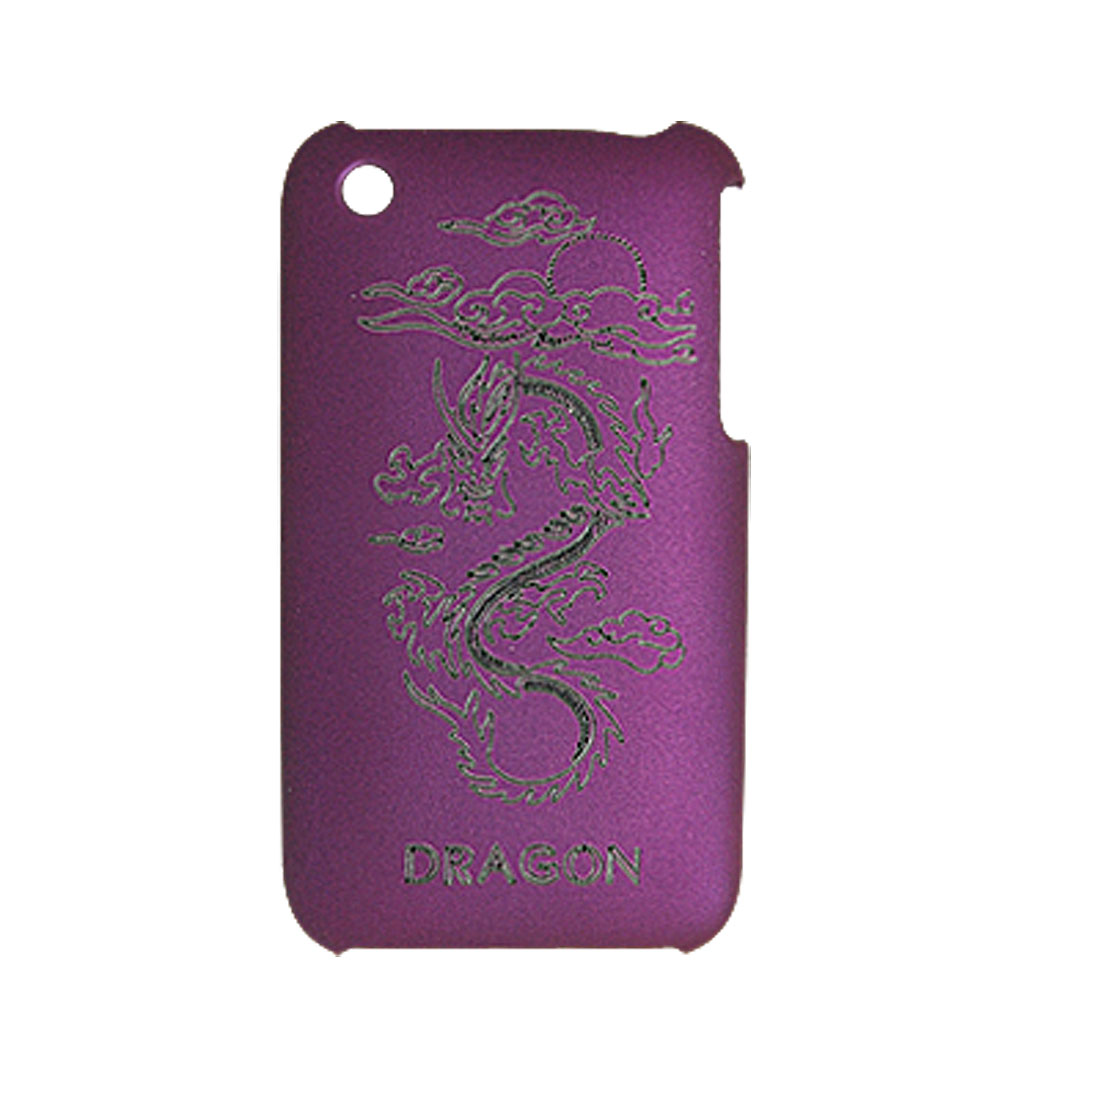 Dragon Design Hard Plastic Case Cover Purple for Apple iPhone 3G